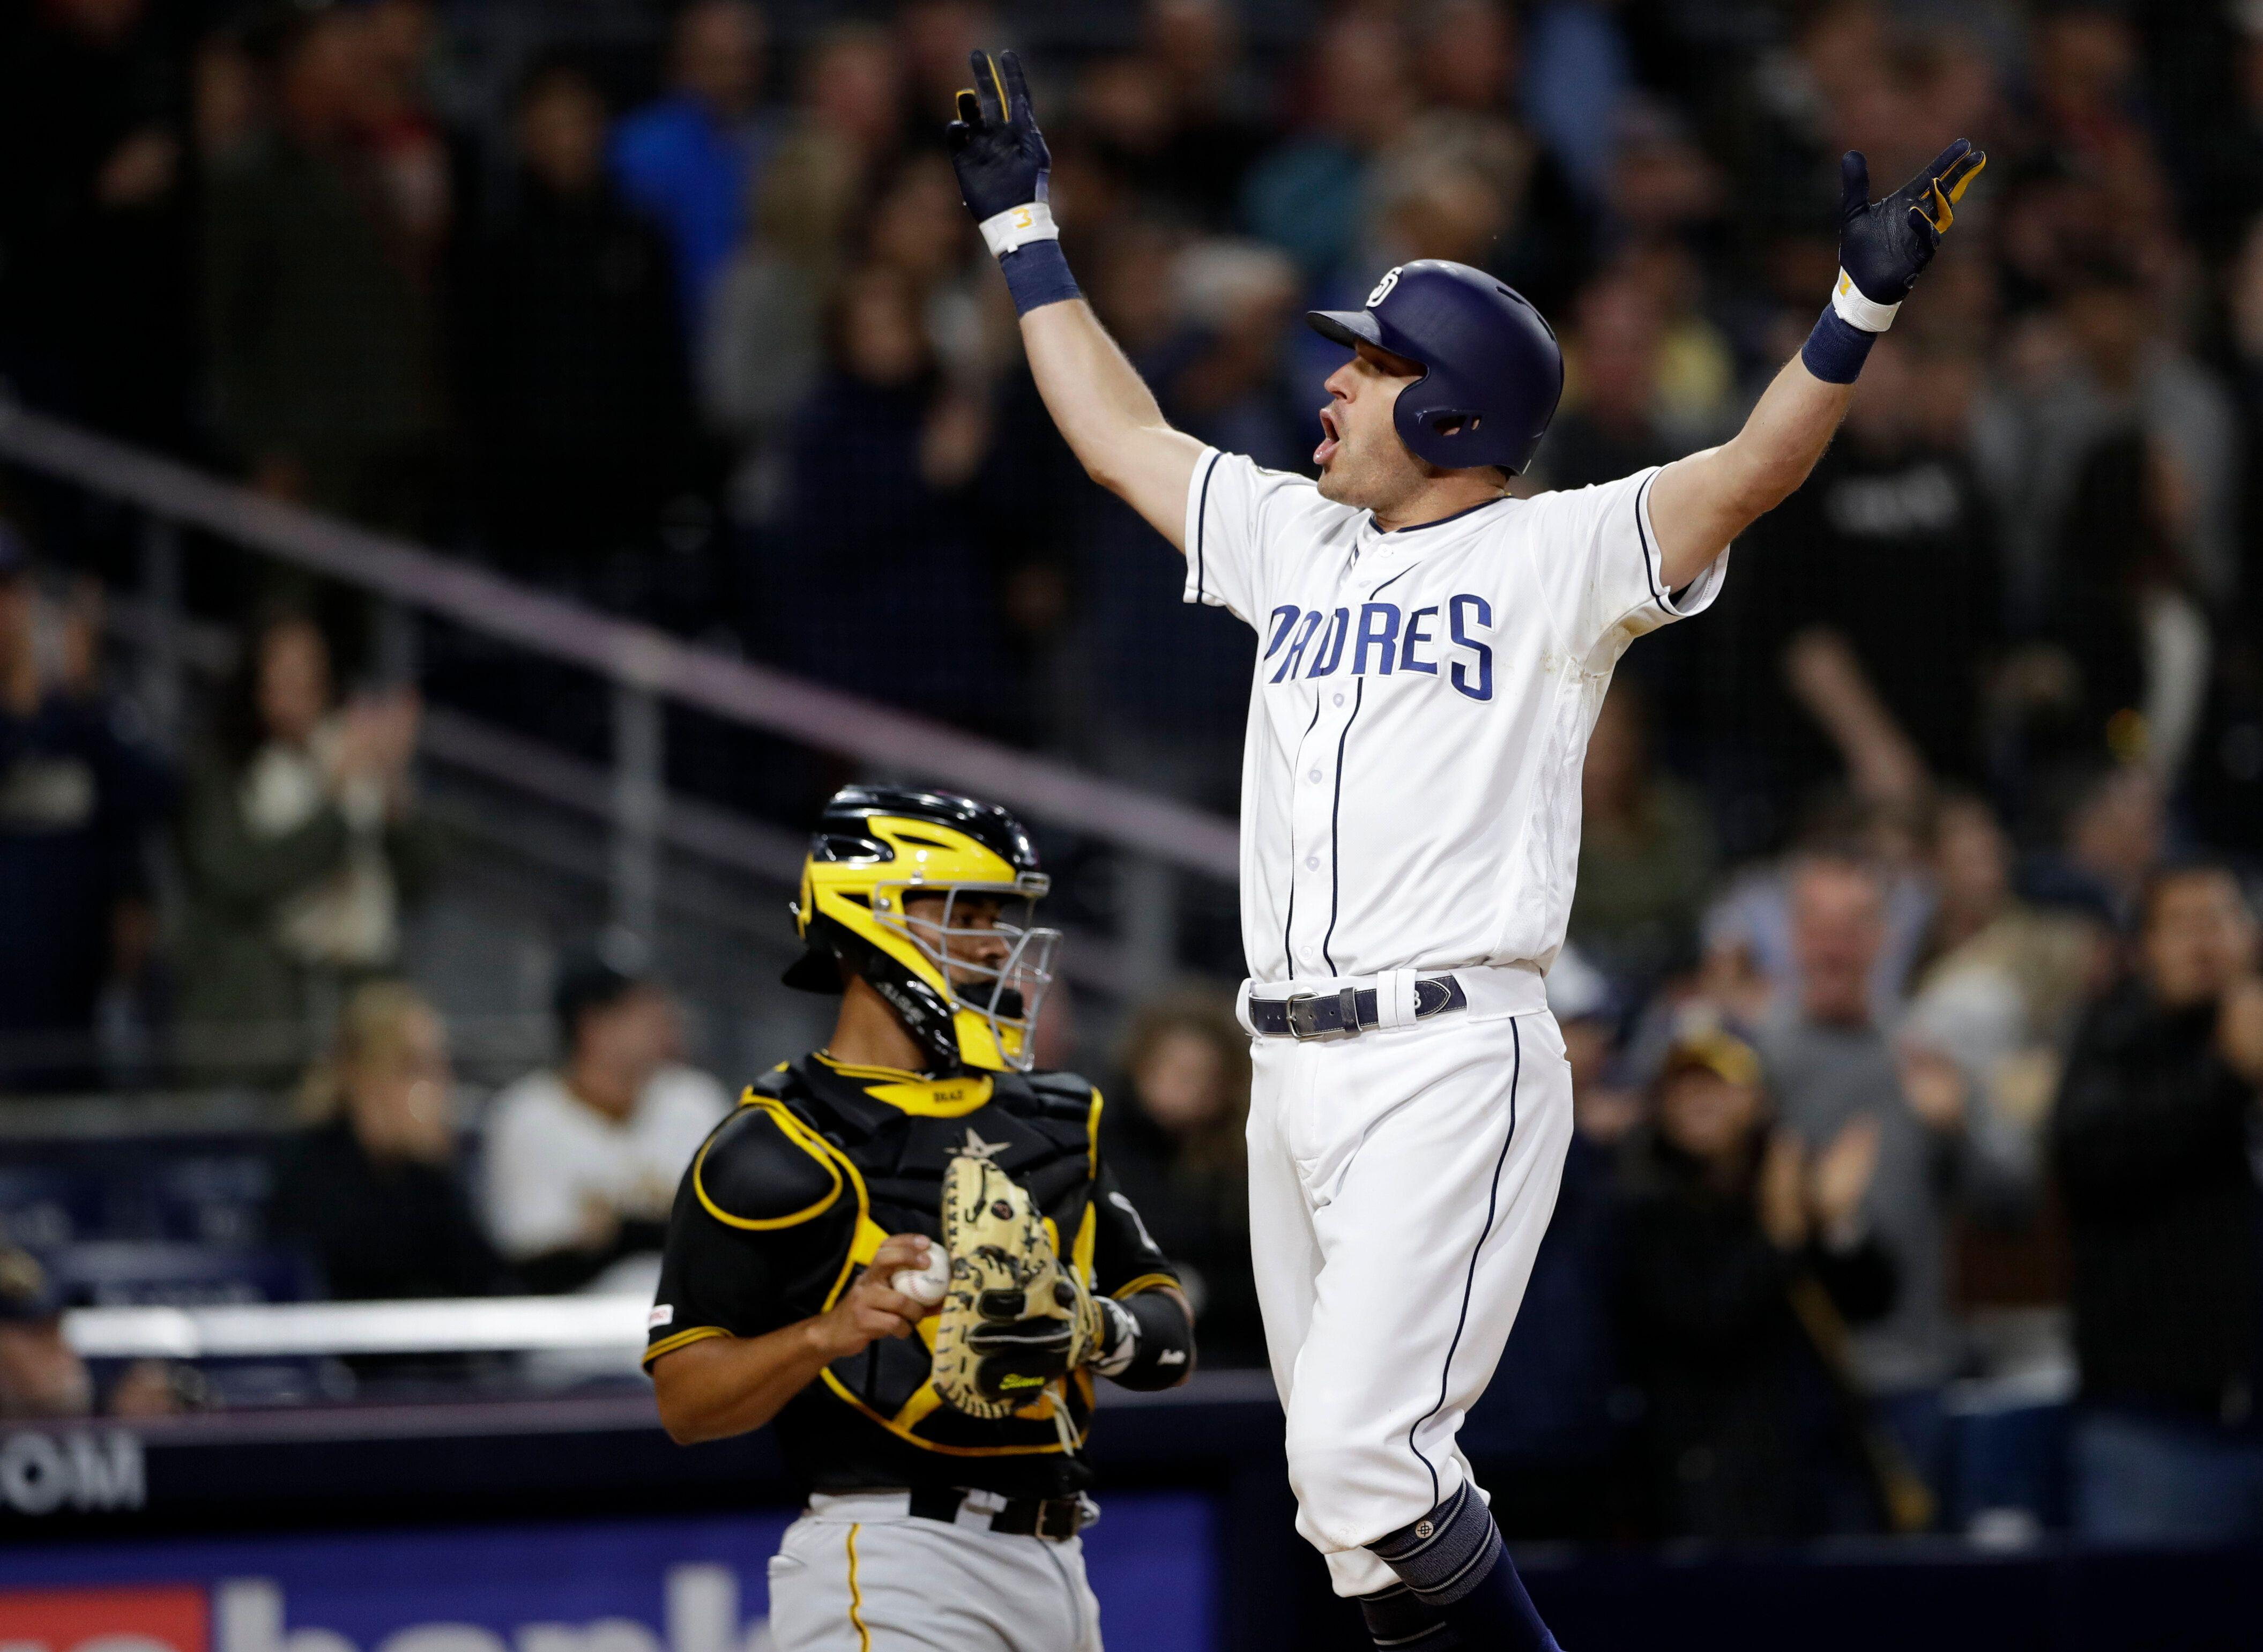 Did Ian Kinsler yell 'f-- you all' at home fans after hitting a clutch home run?